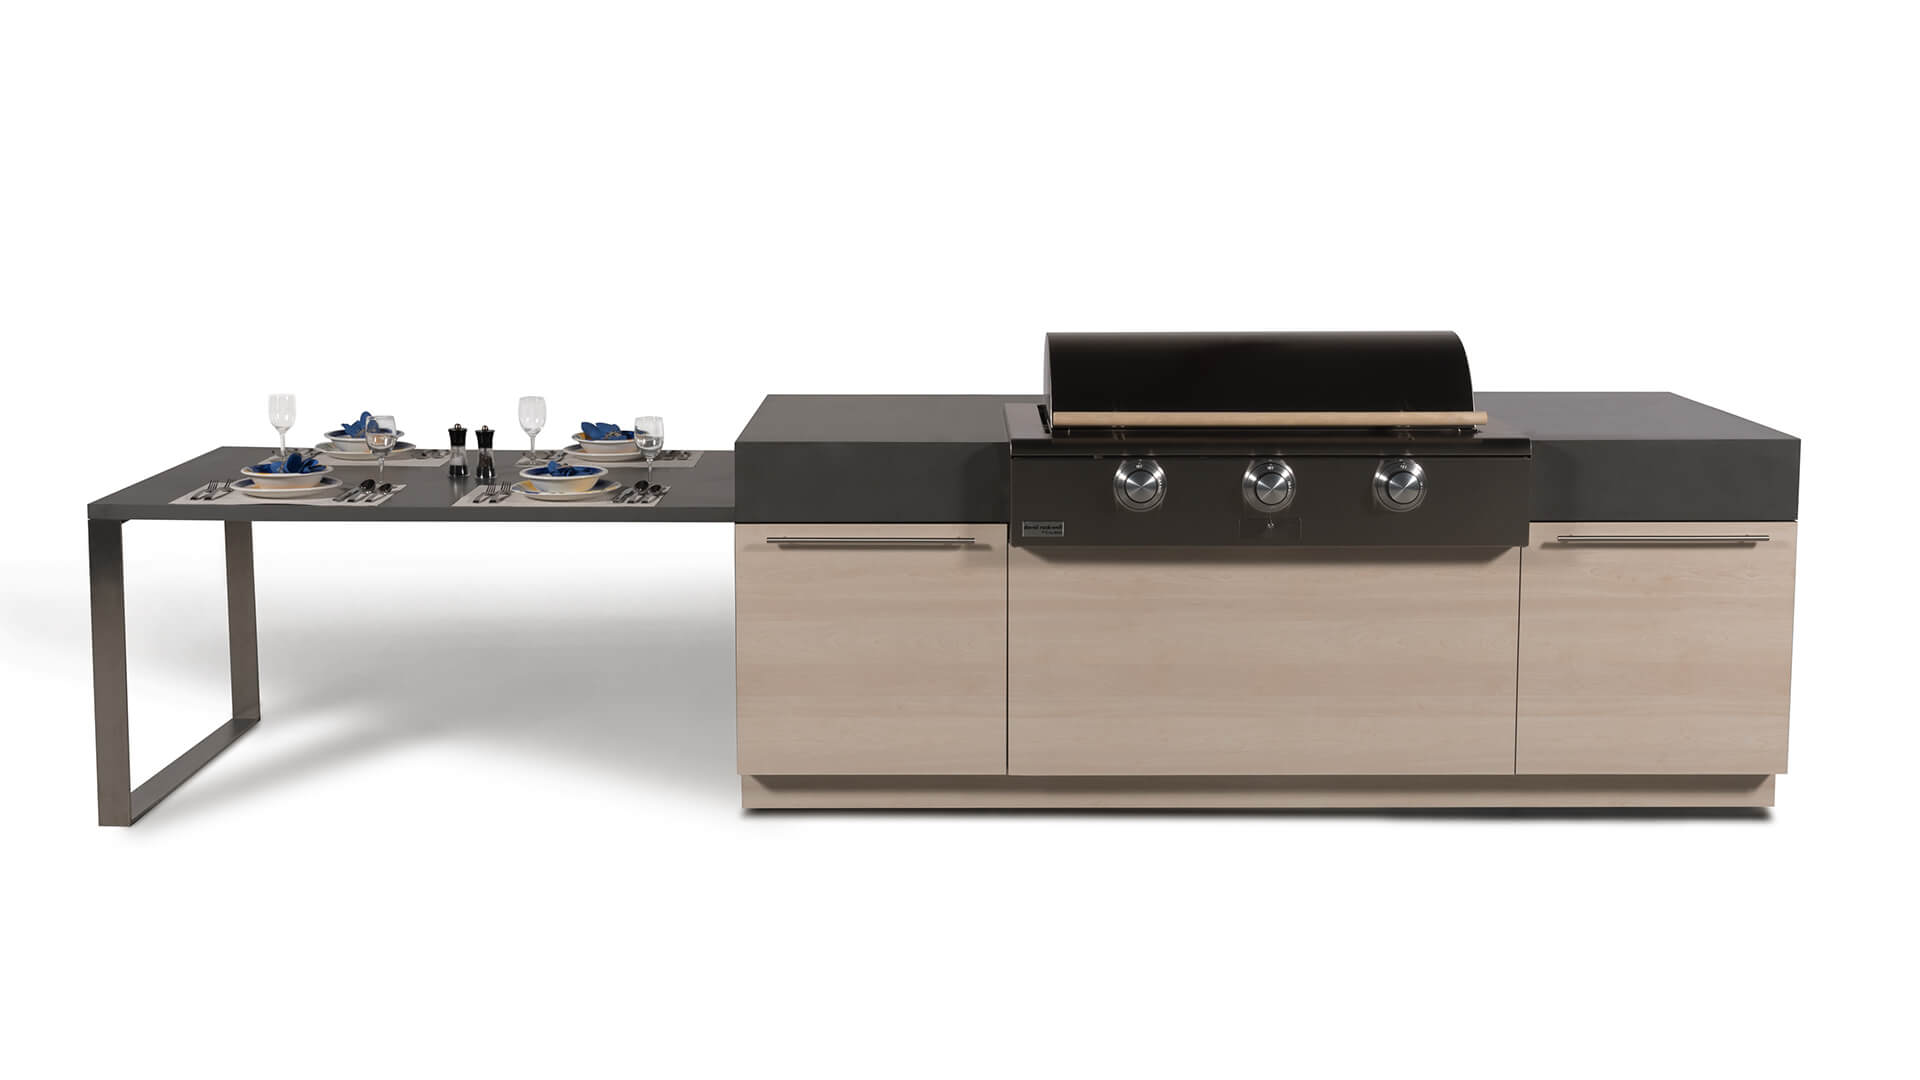 Garden Living - The Flow Outdoor Kitchen